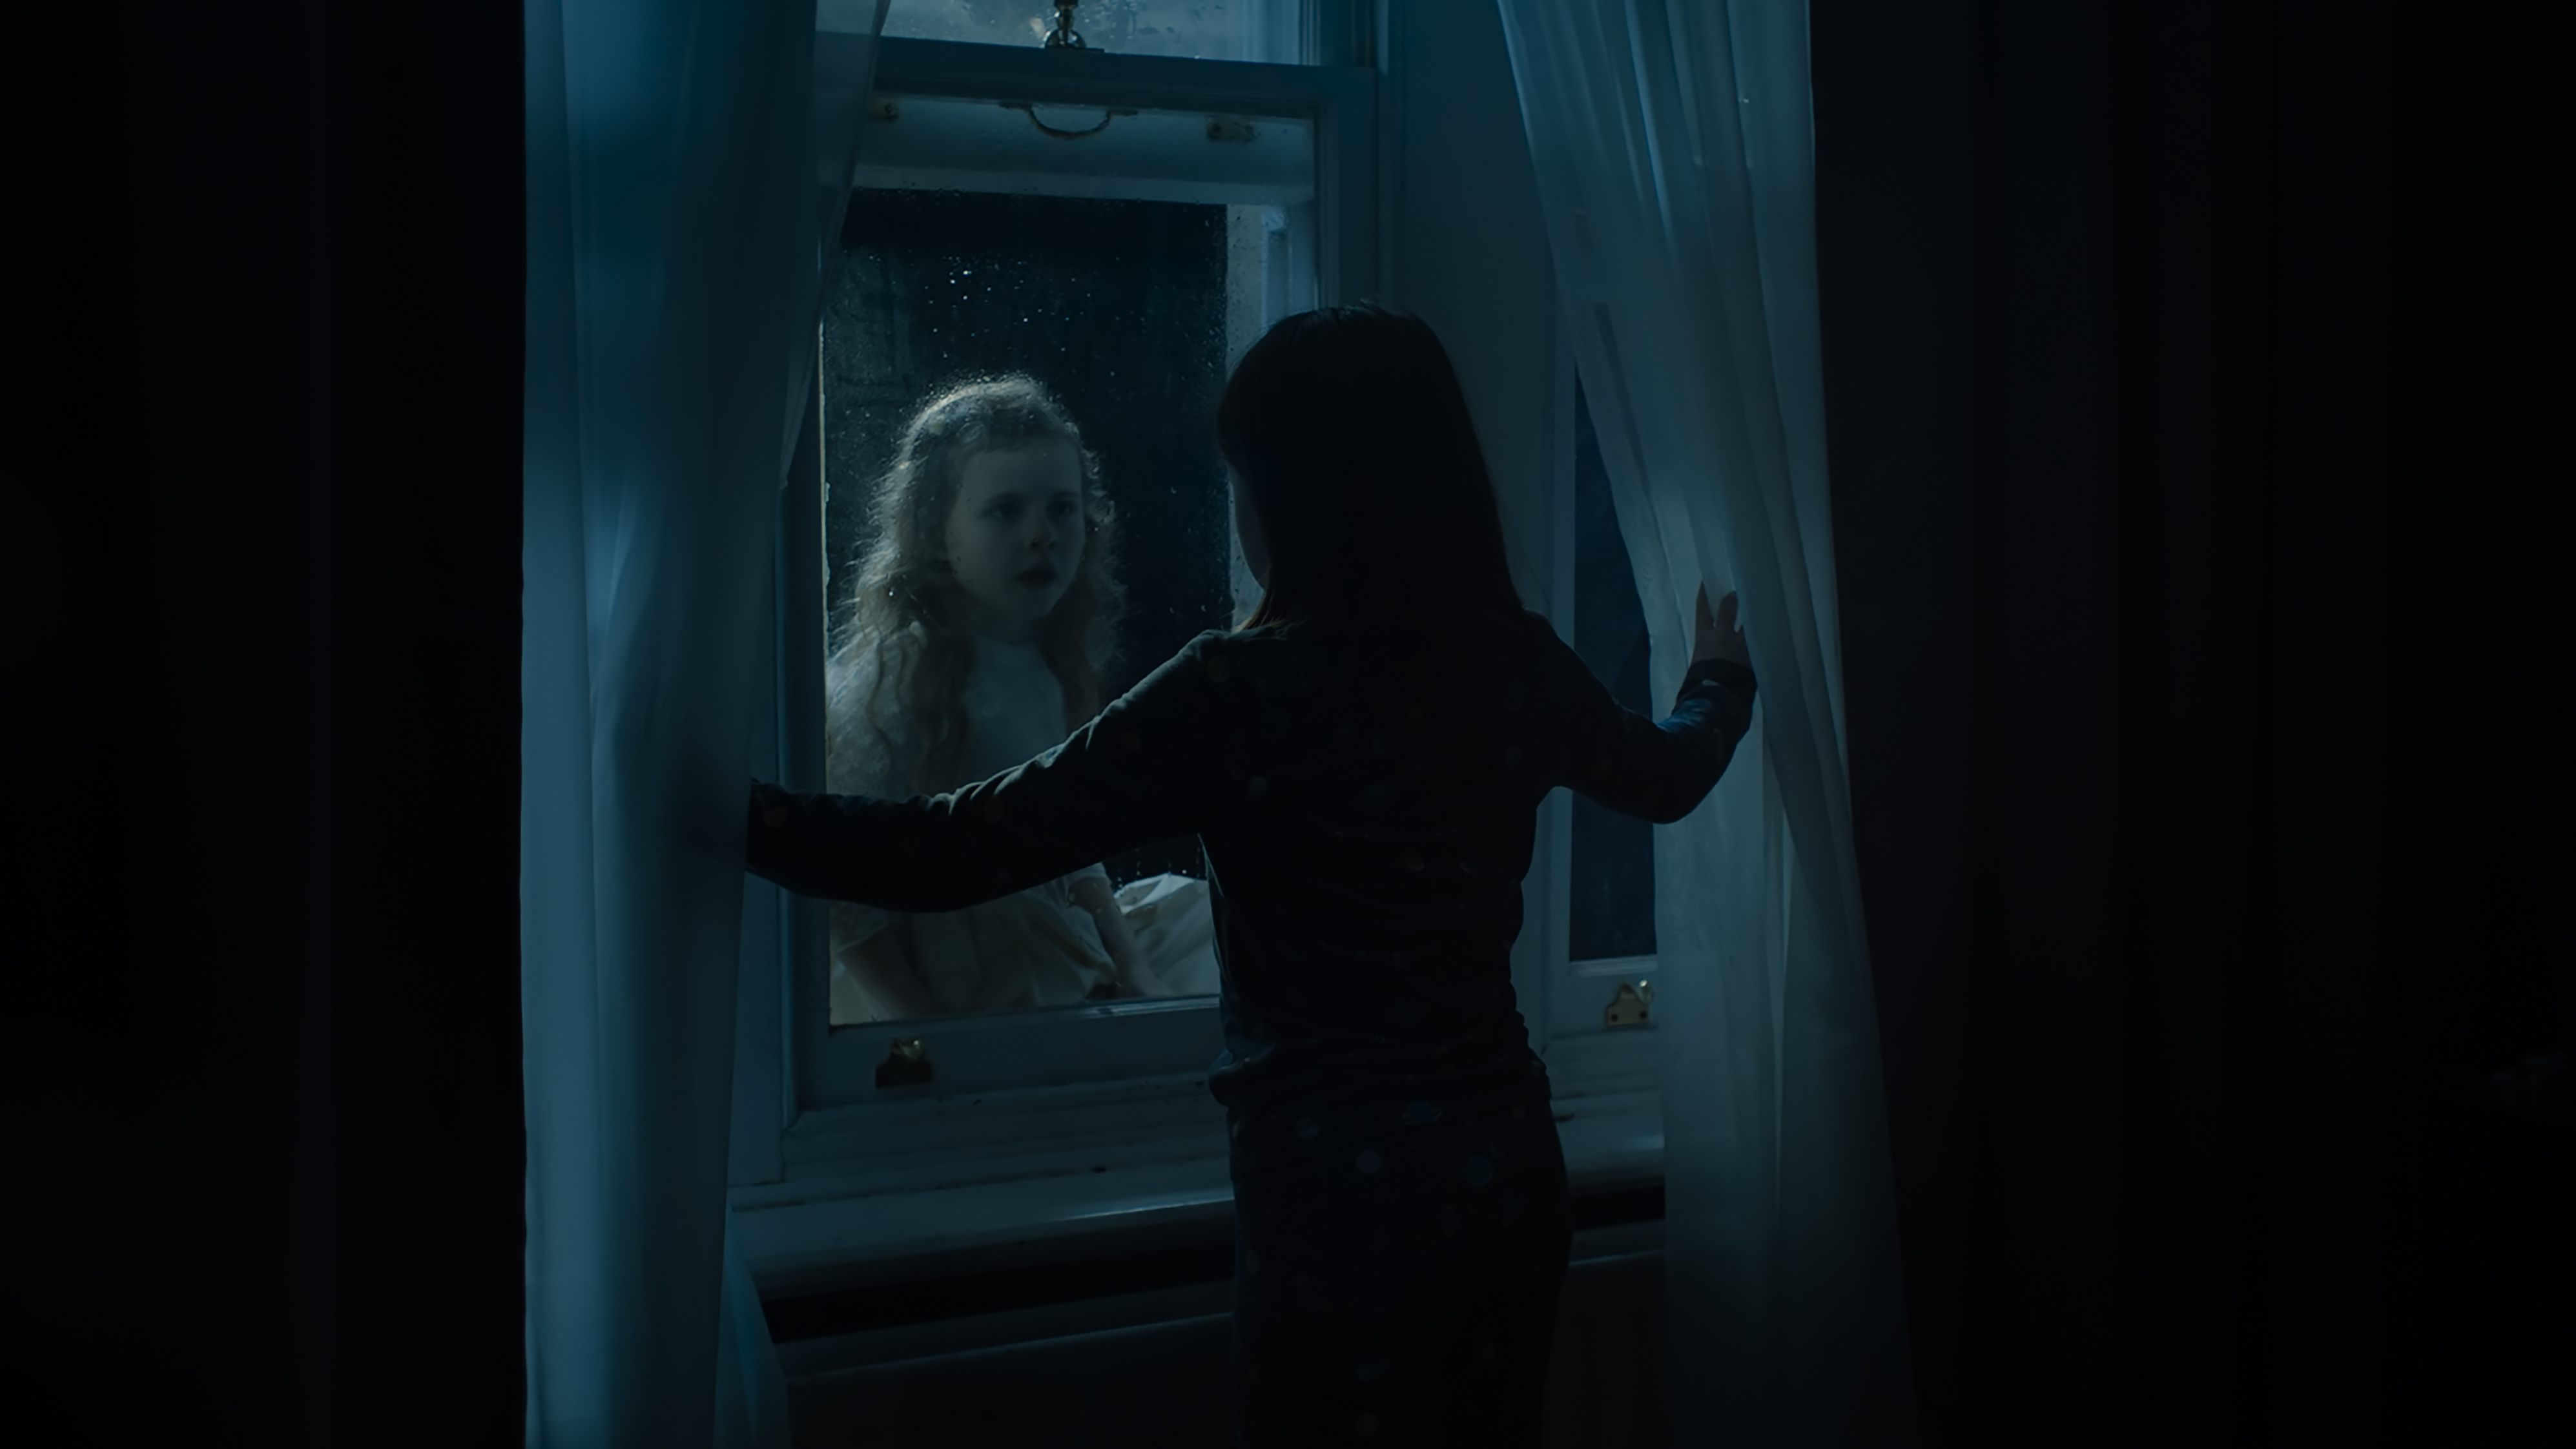 A young girl seen from behind in shadow standing in front of a closed window. A young girl with light hair and a white dress can be seen on the other side of the glass.